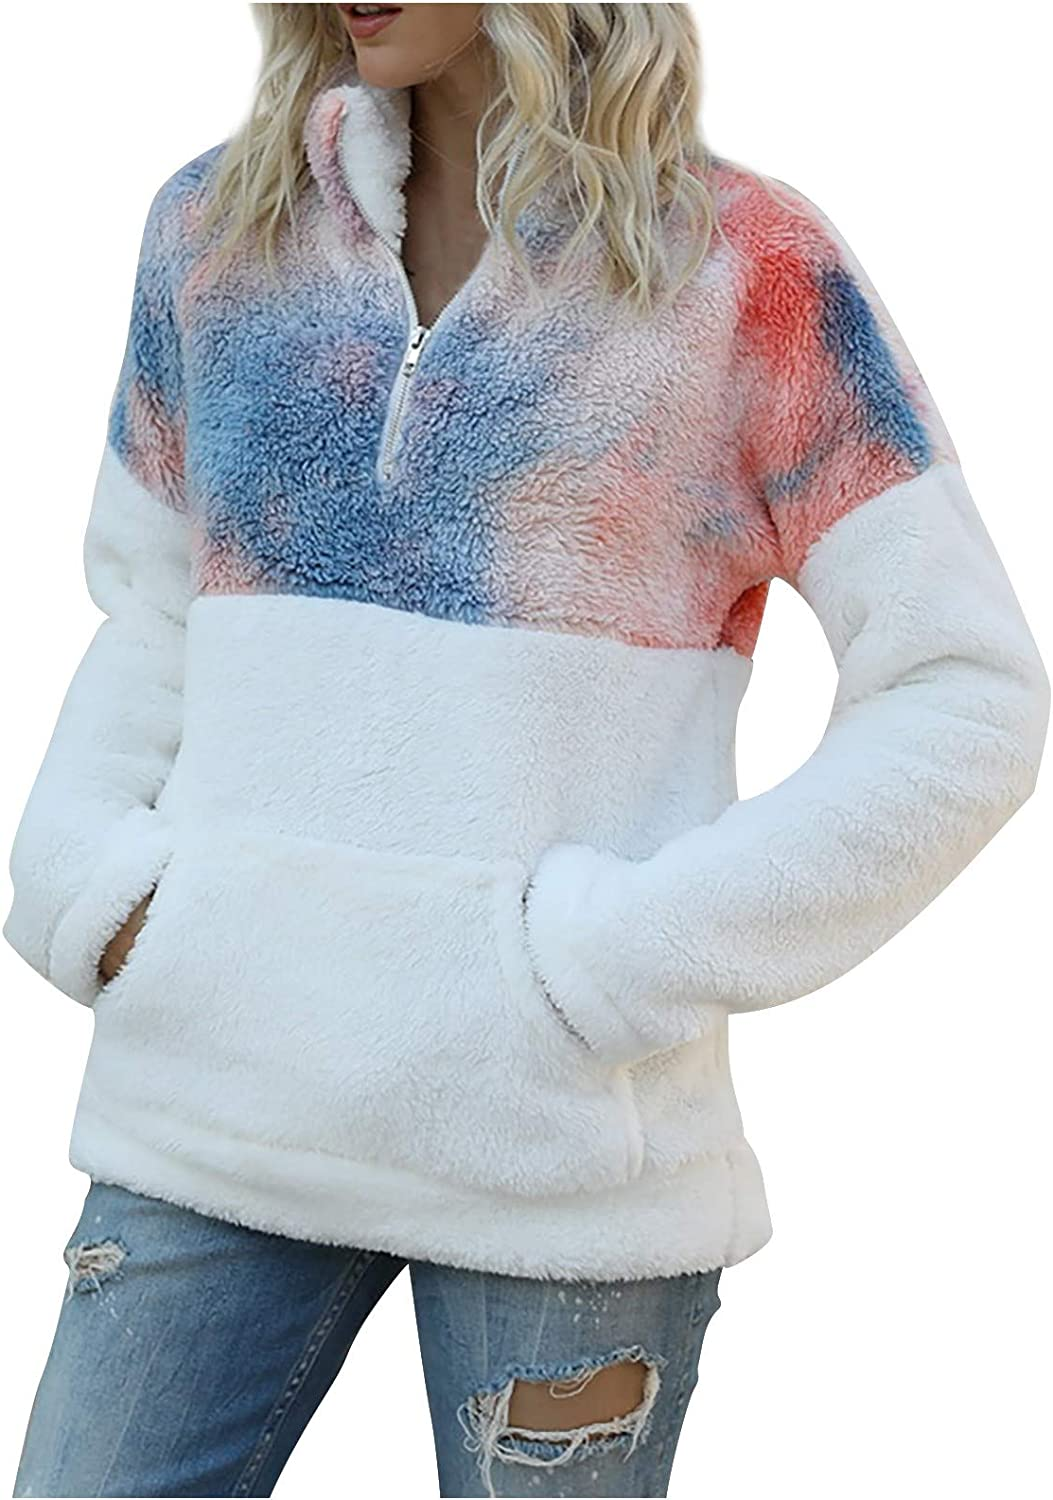 New Shipping Free Shipping Fashion Women's Tie-Dye Sweater Long Plush Sale Special Price Printing Sleeve Stitc